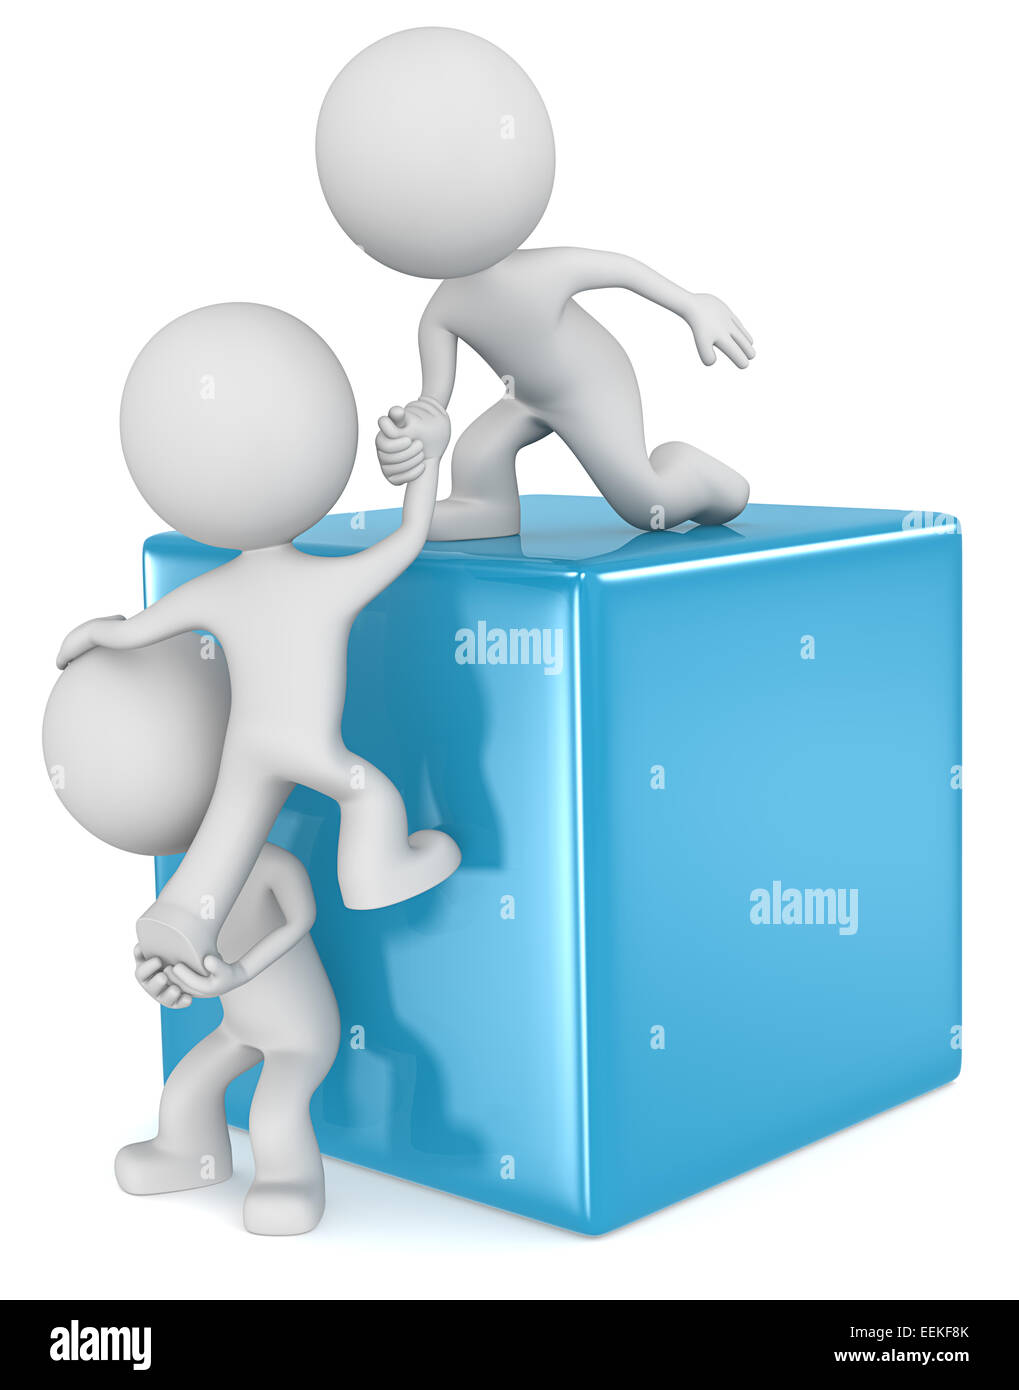 The dude 3D character x3 climbing a Blue Cube. - Stock Image